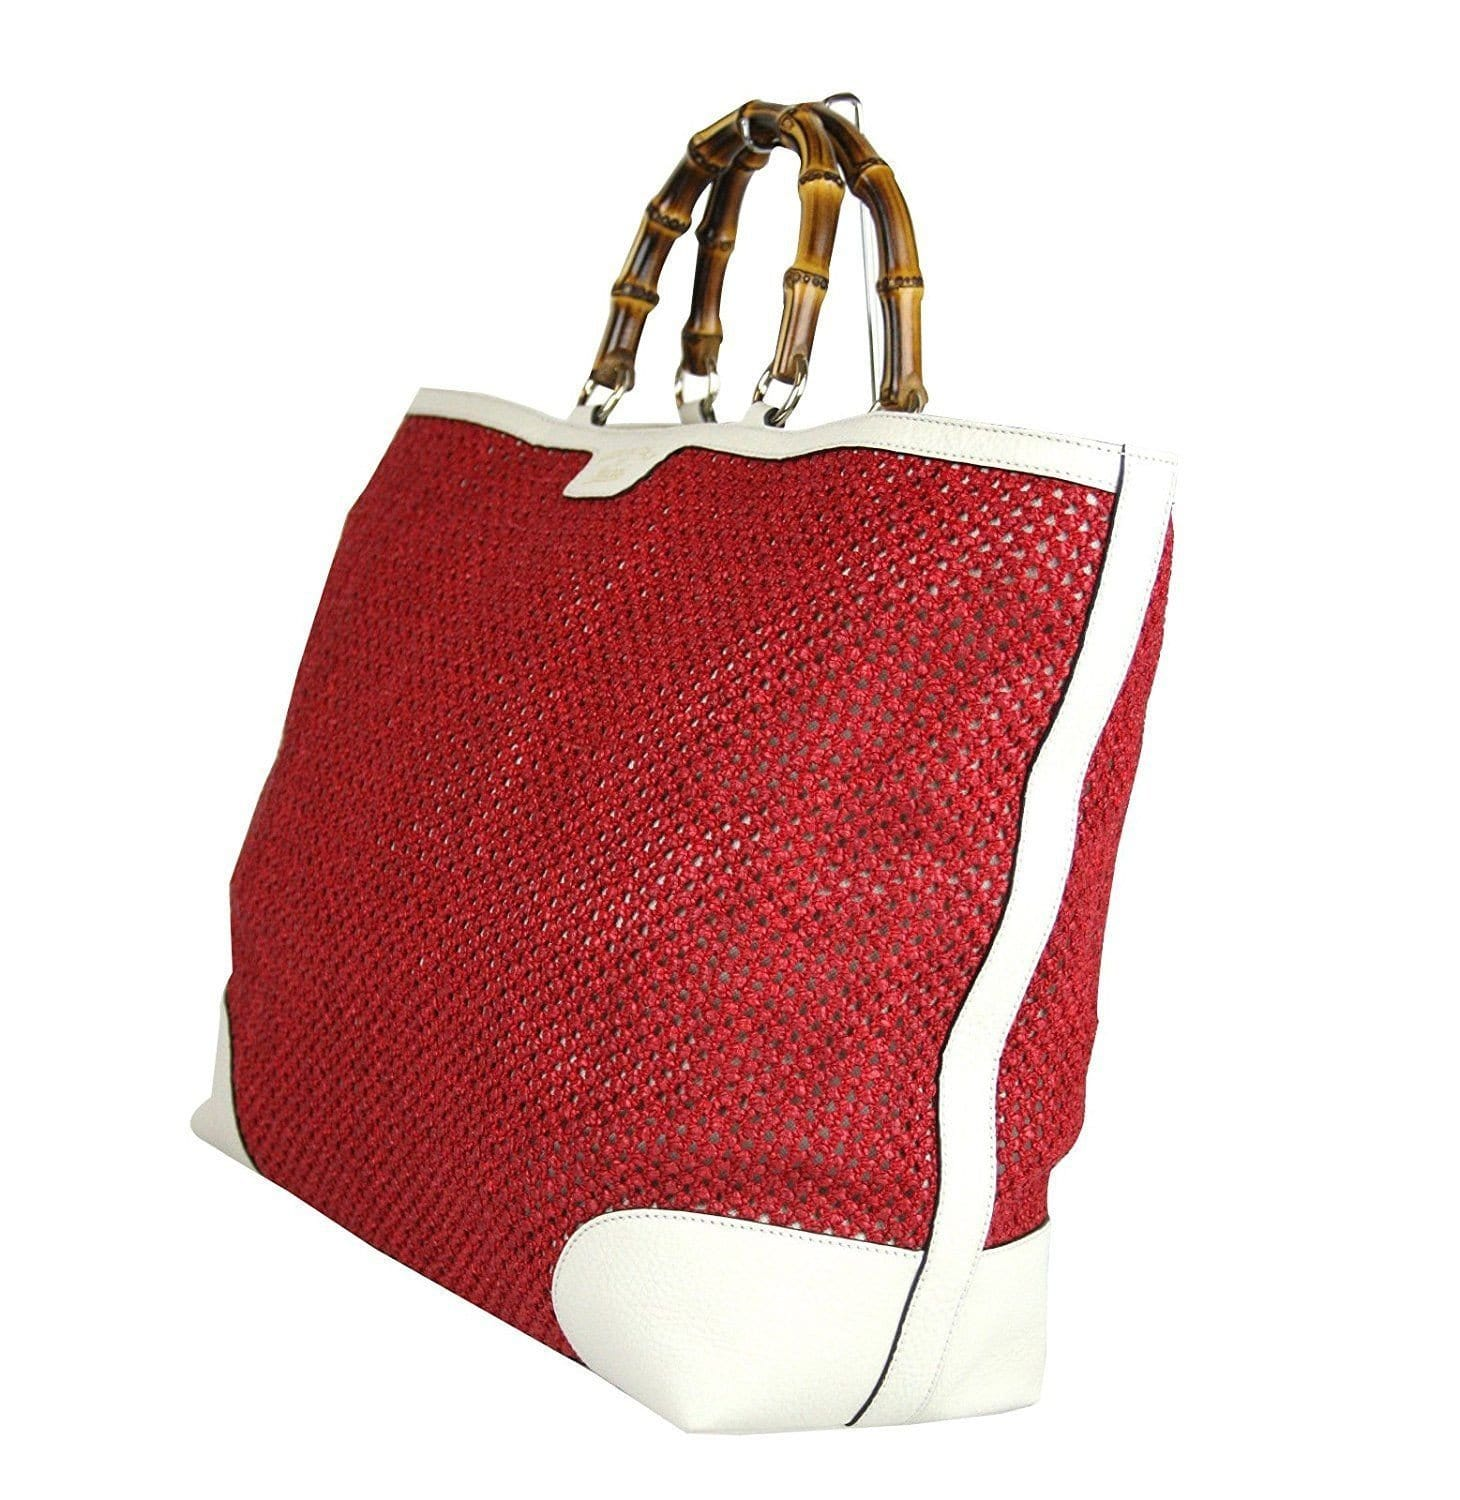 8547d0339f3 Gucci 338964 Red Straw Bamboo Handle Large Shopper Tote Trim - Final C